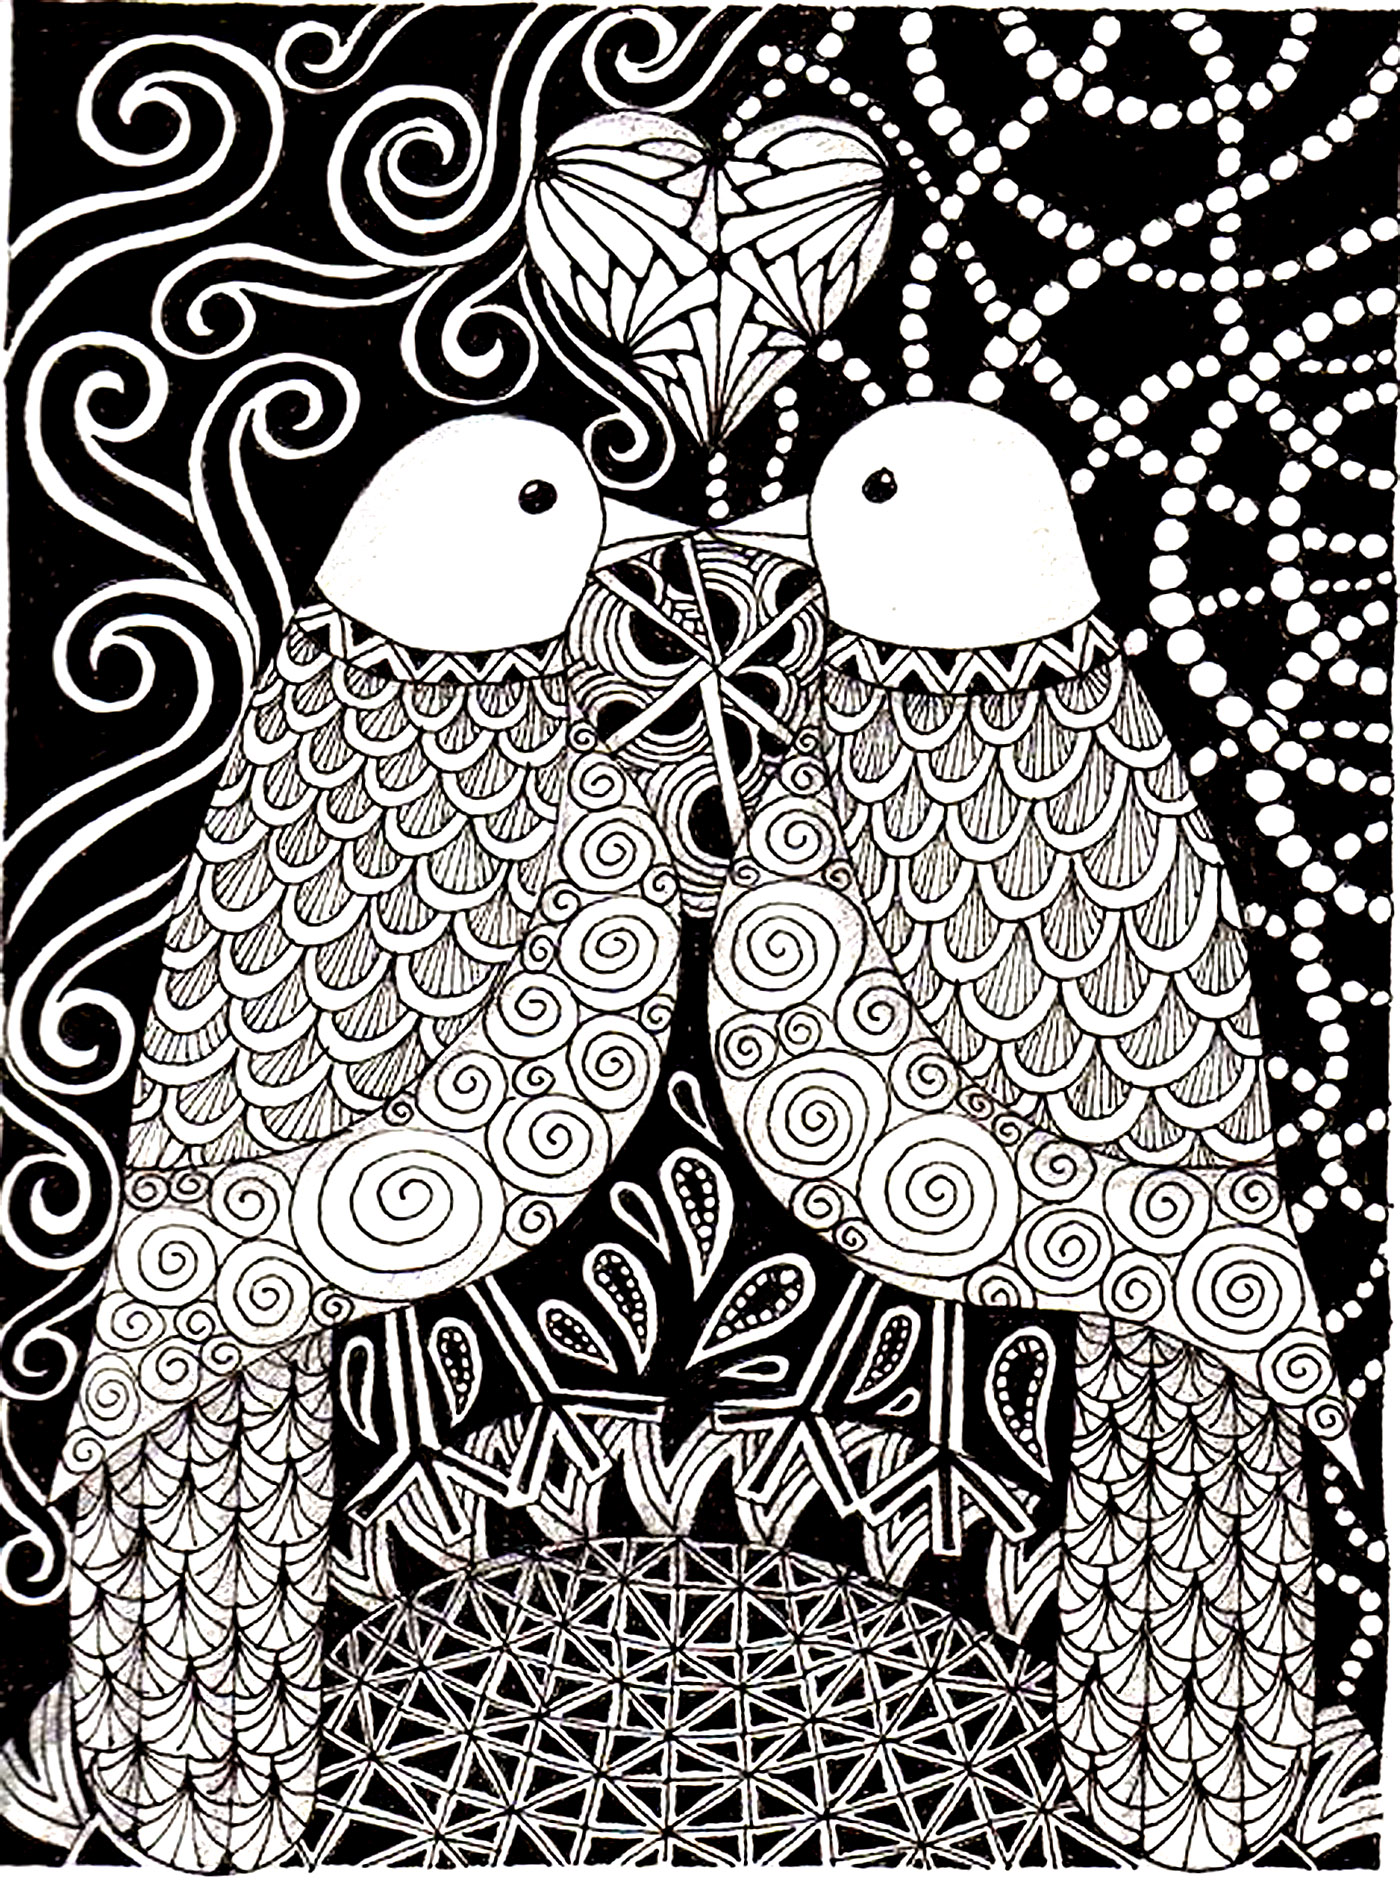 Love birds - Birds Adult Coloring Pages